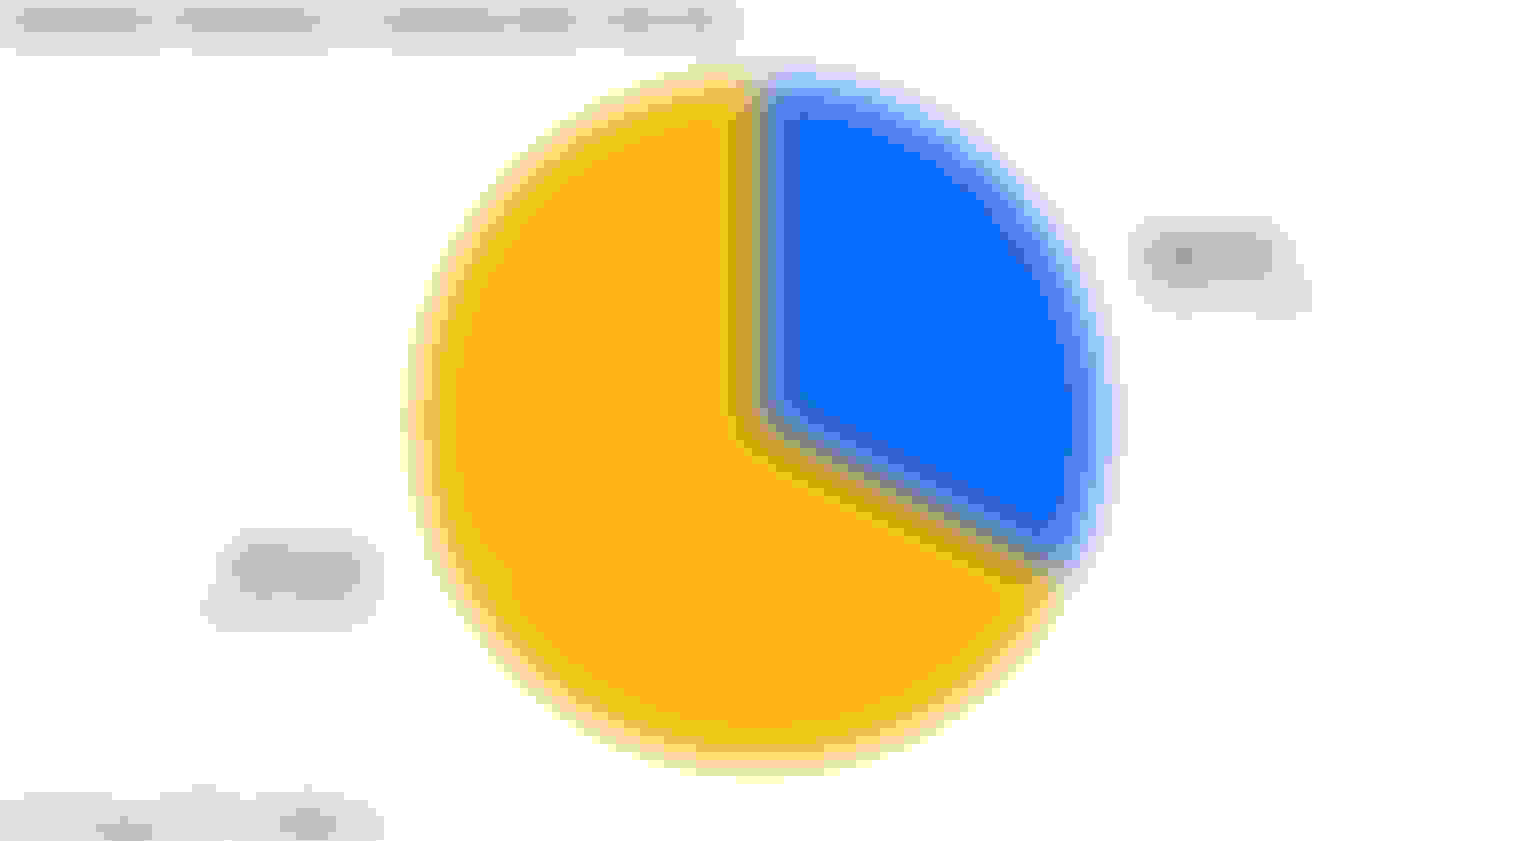 Pie chart comparing how often NYC residents rent vs. own their homes